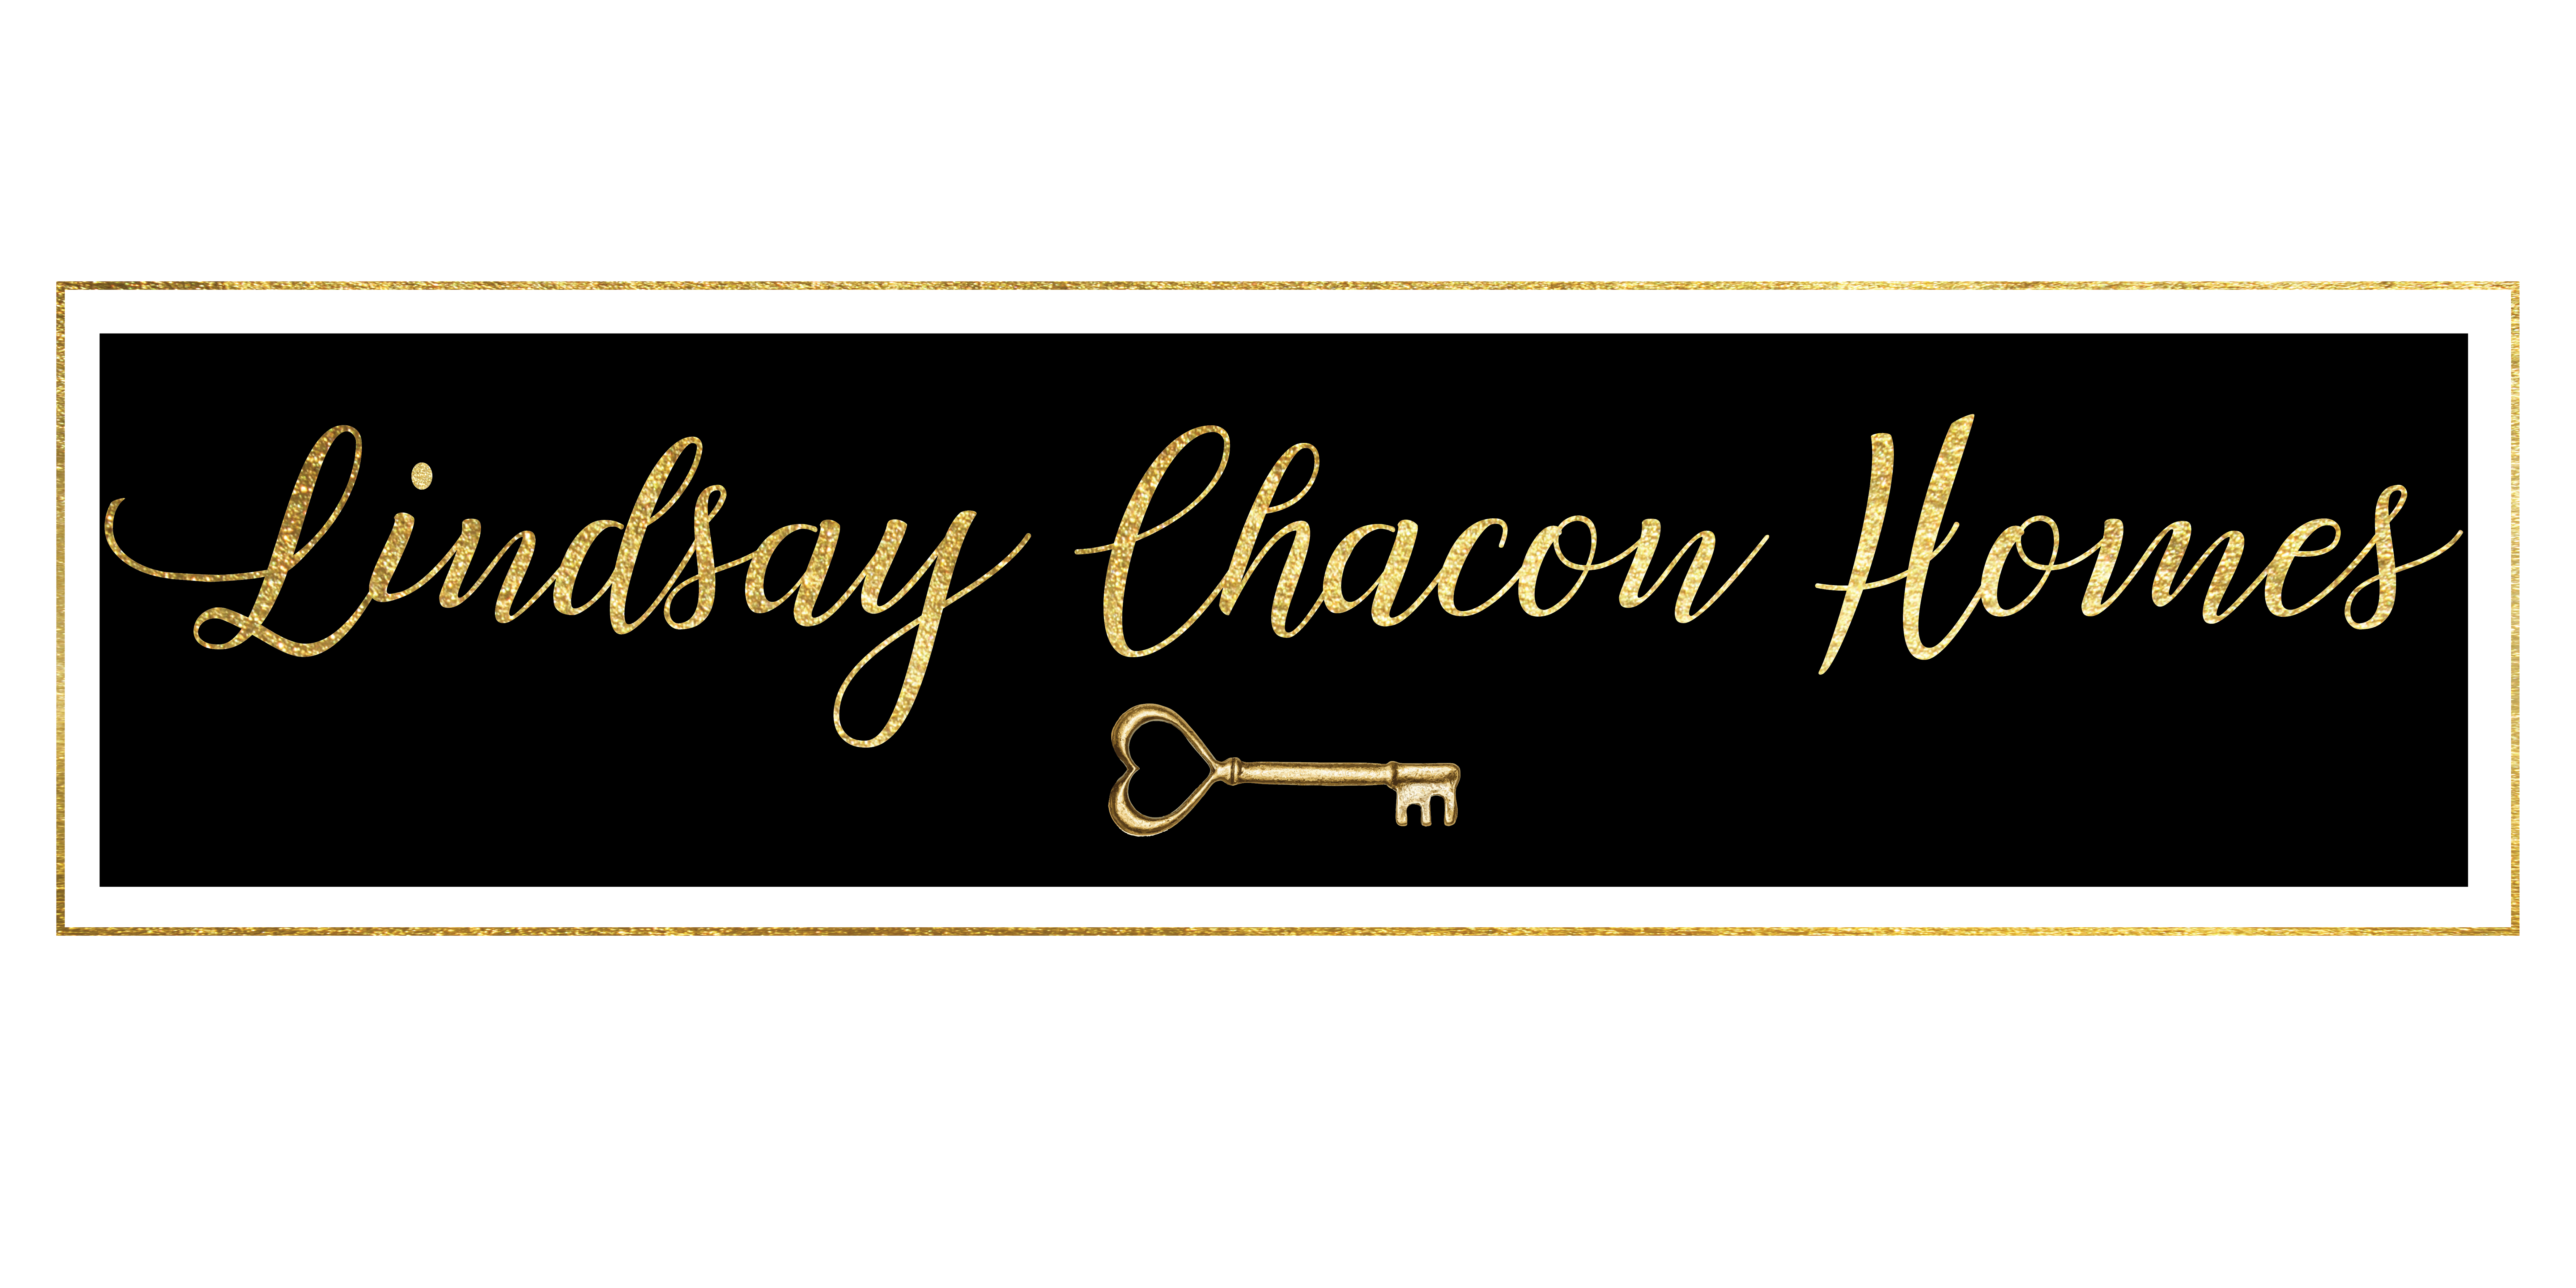 lindsay chacon homes logo